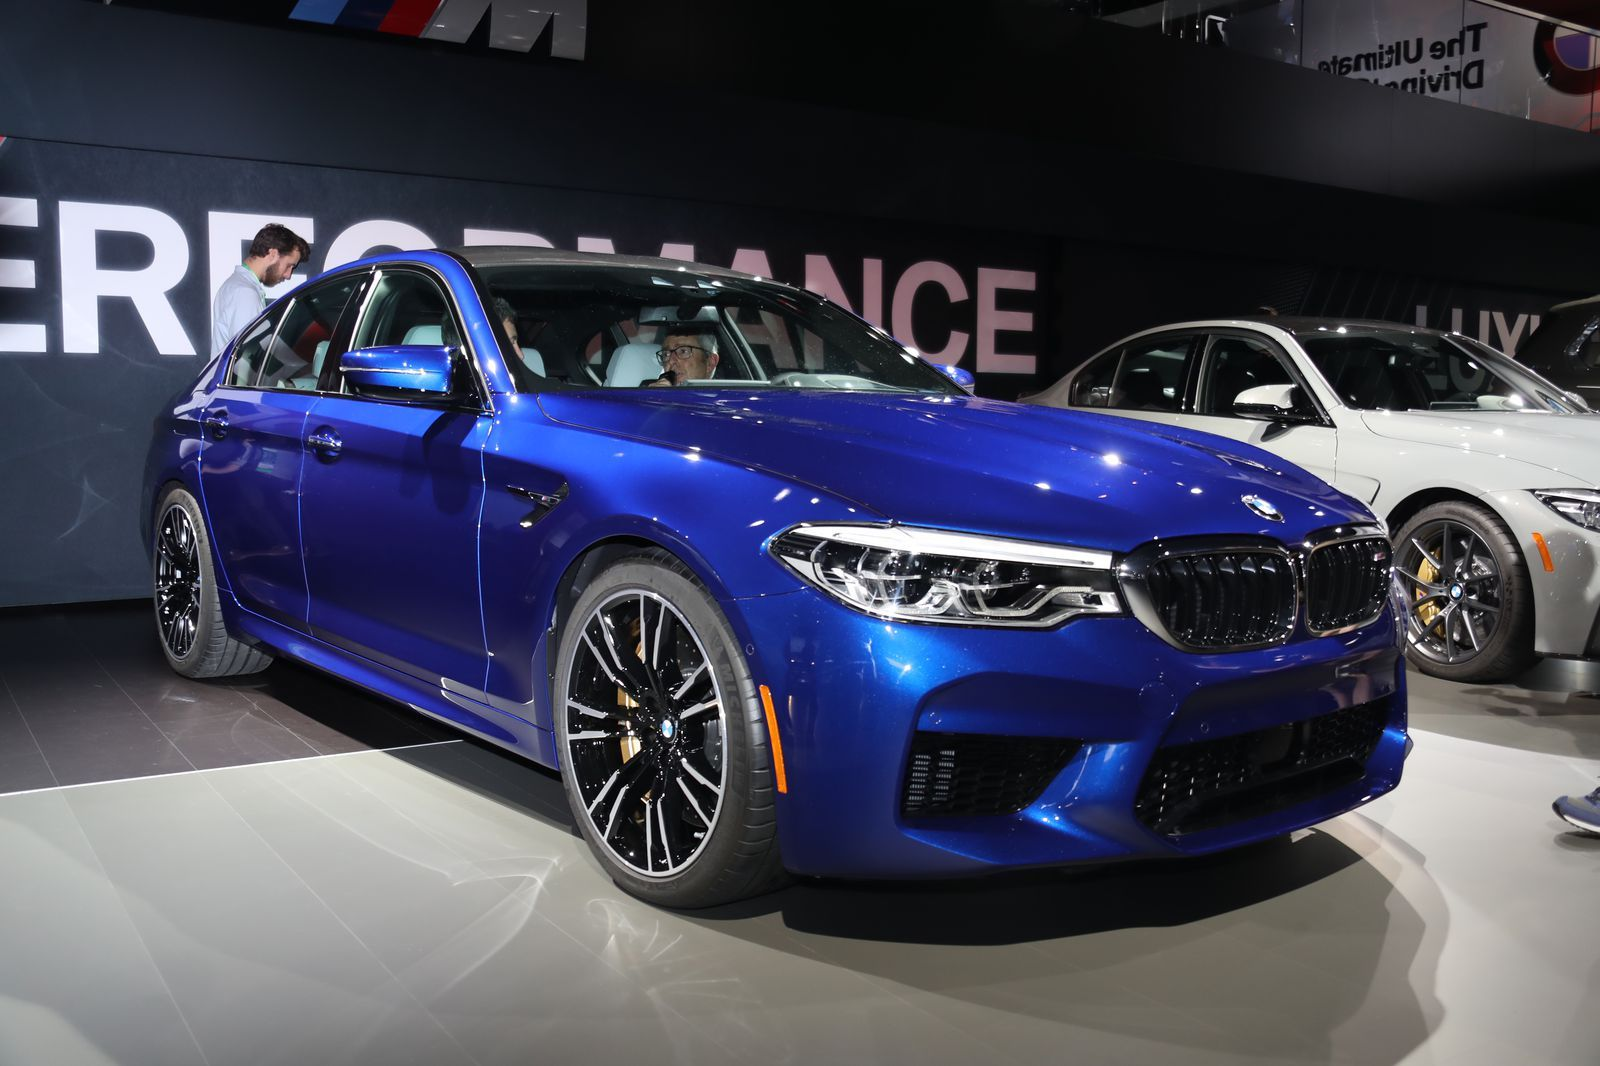 2018 BMW M5 600 HP and AllWheel Drive for 102,600 (With